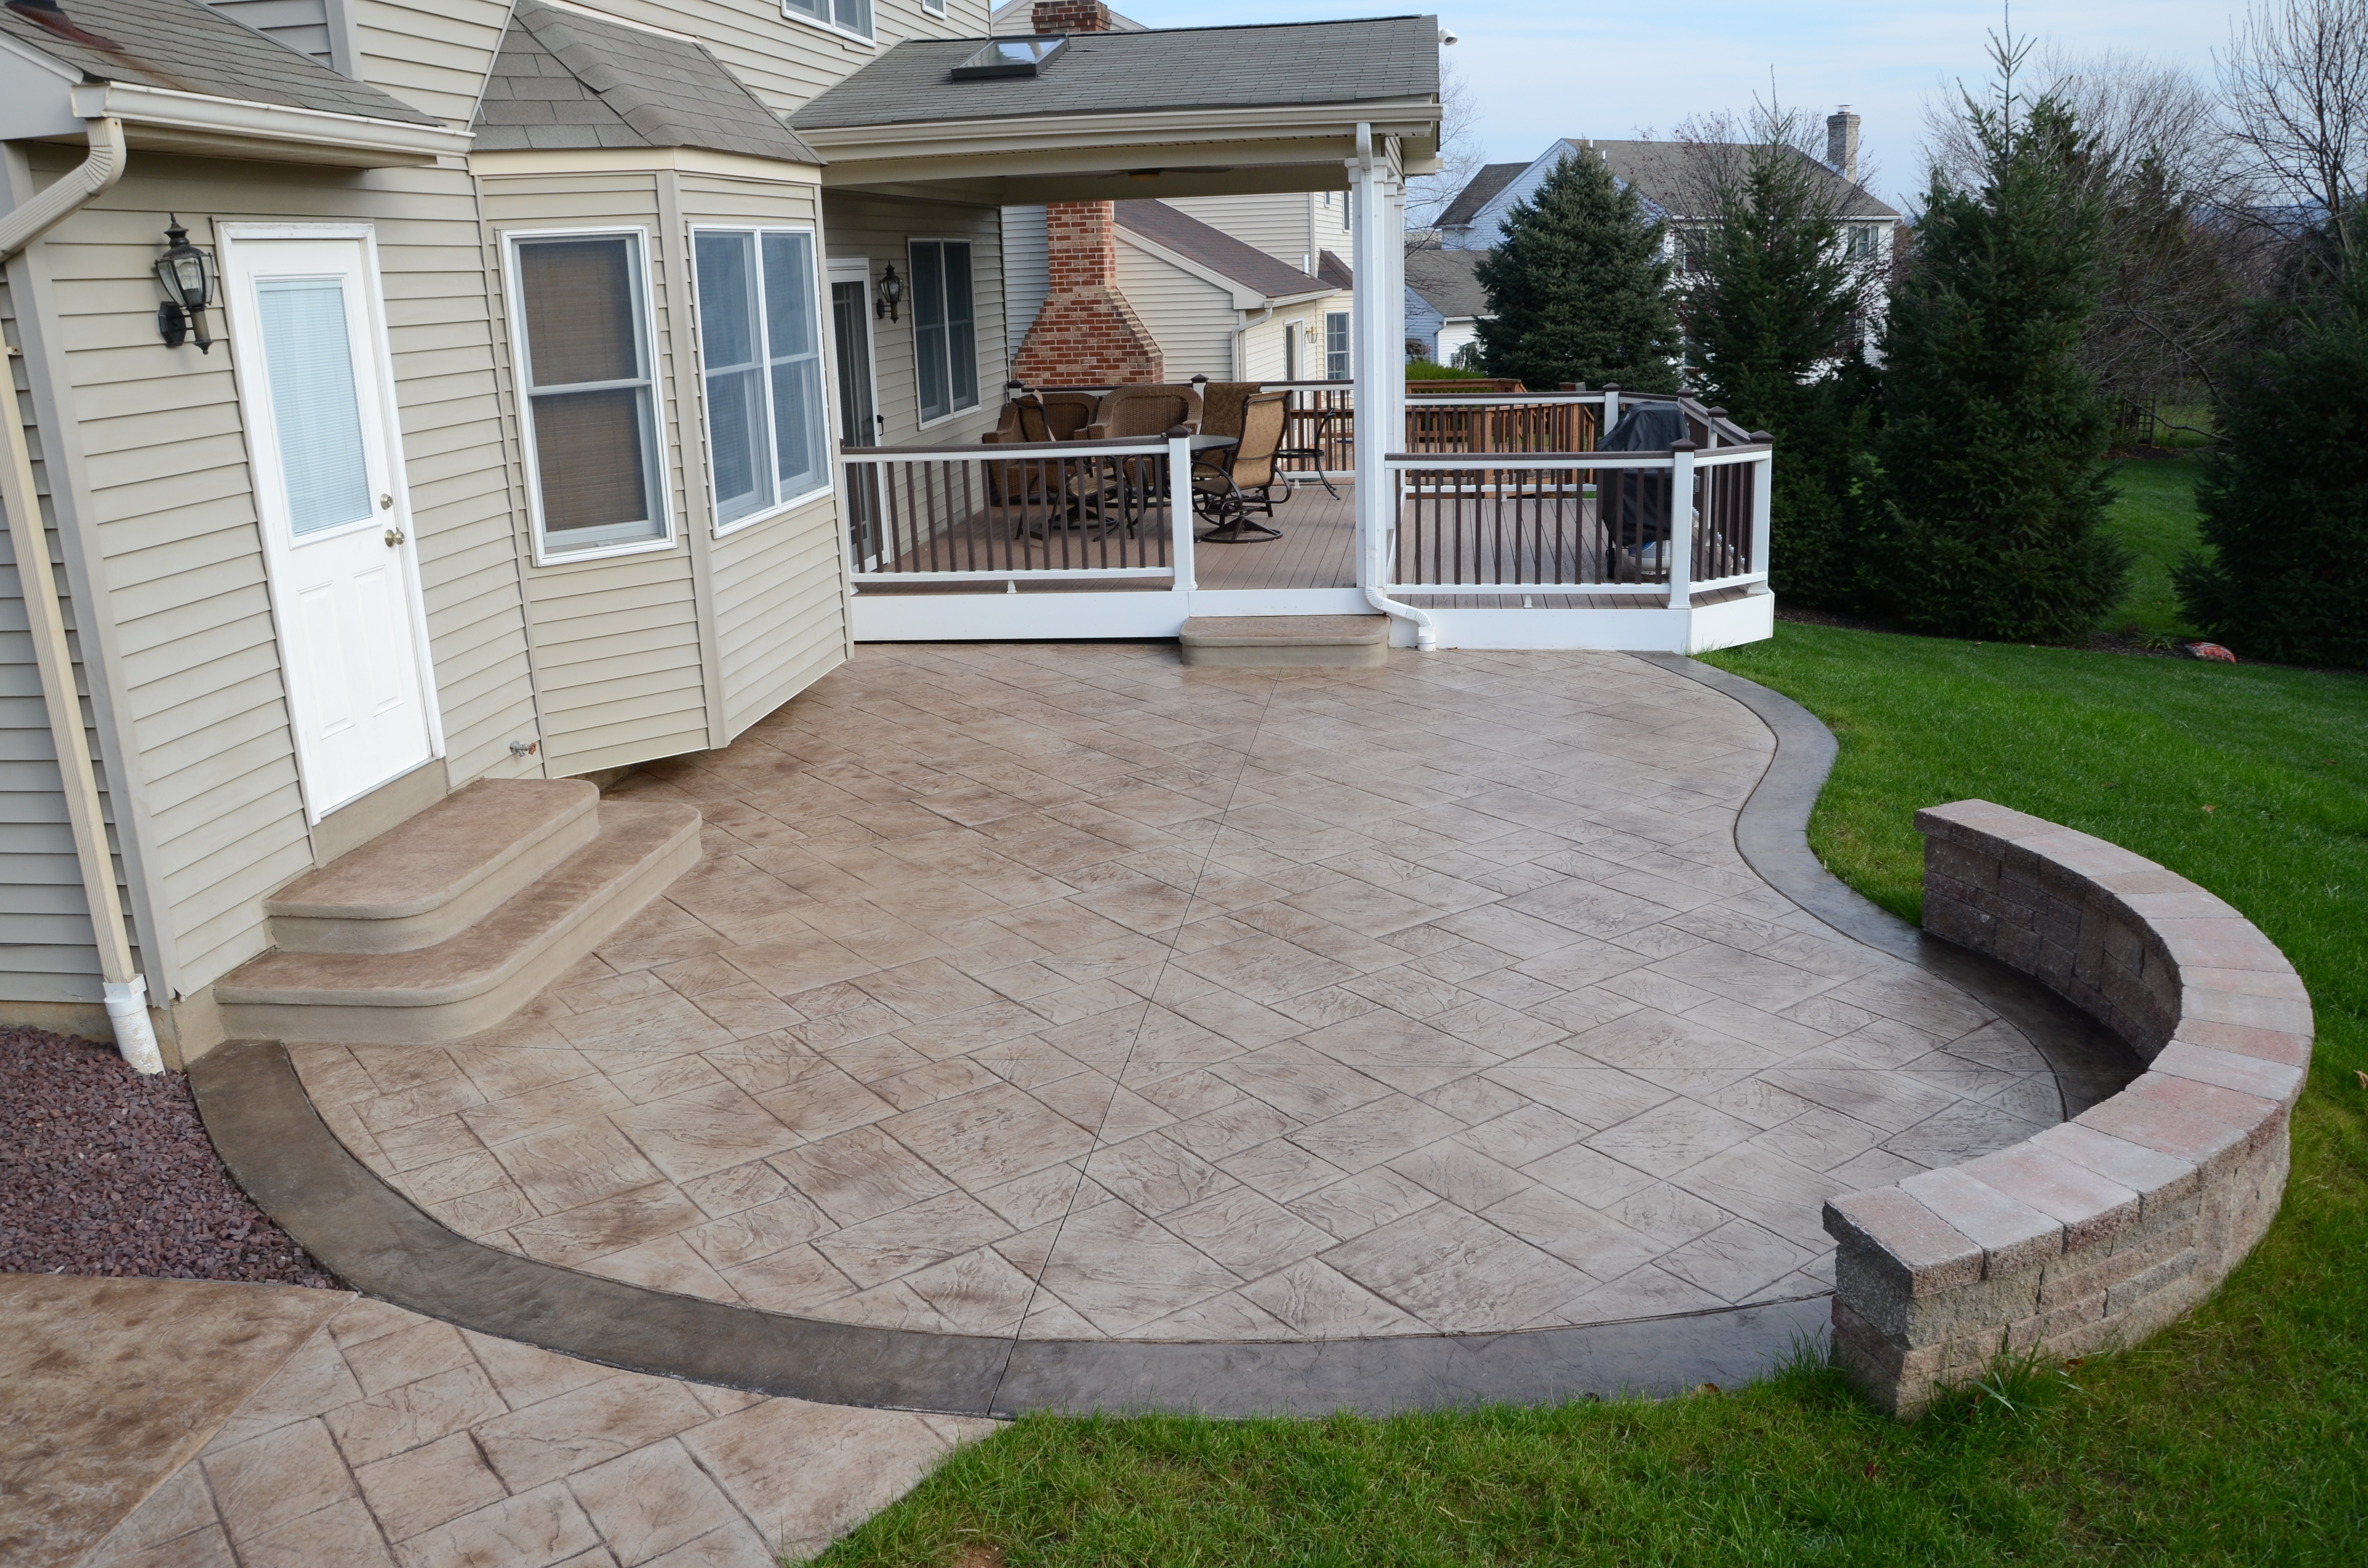 Pation Designs Stamped Concrete Patio Floor Design And Pattern With 10